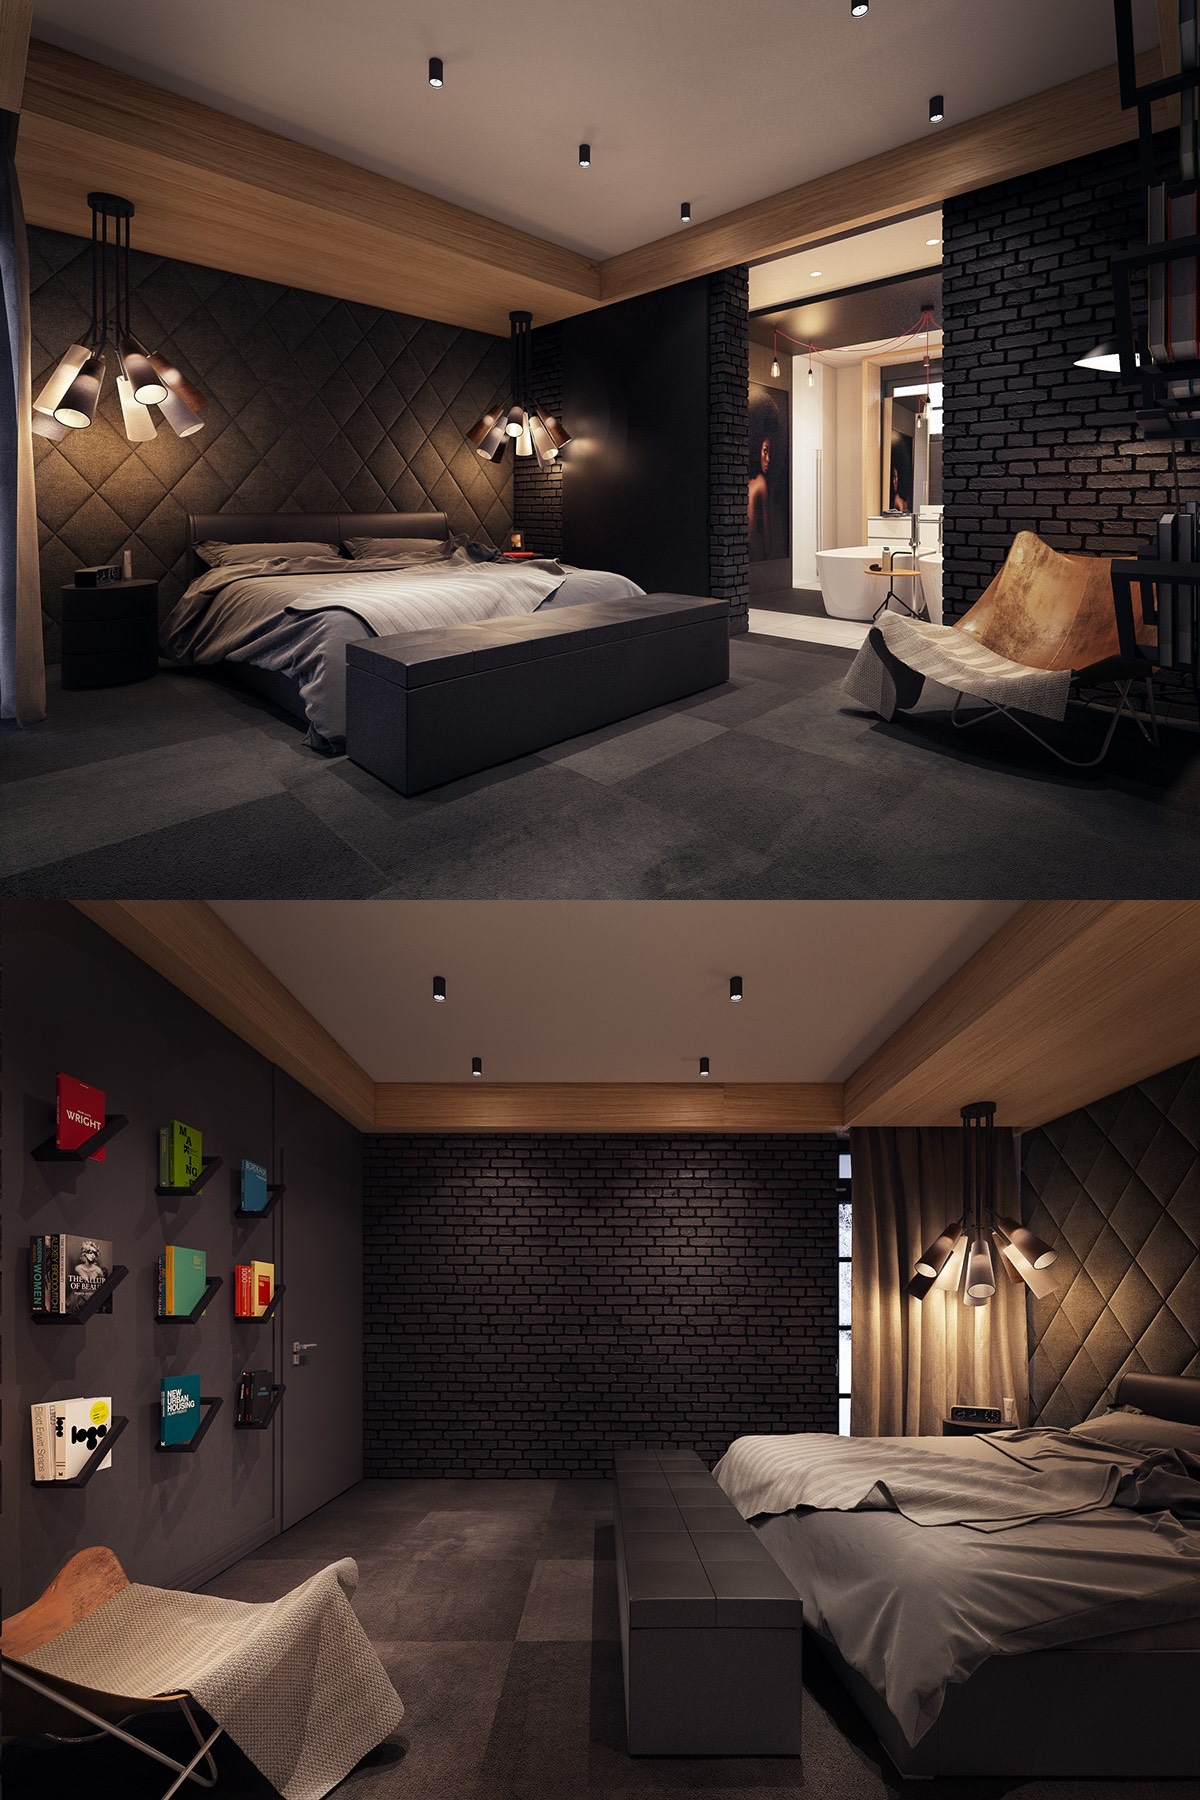 dark color bedroom decorating ideas shows a luxury and masculine impression roohome. Black Bedroom Furniture Sets. Home Design Ideas